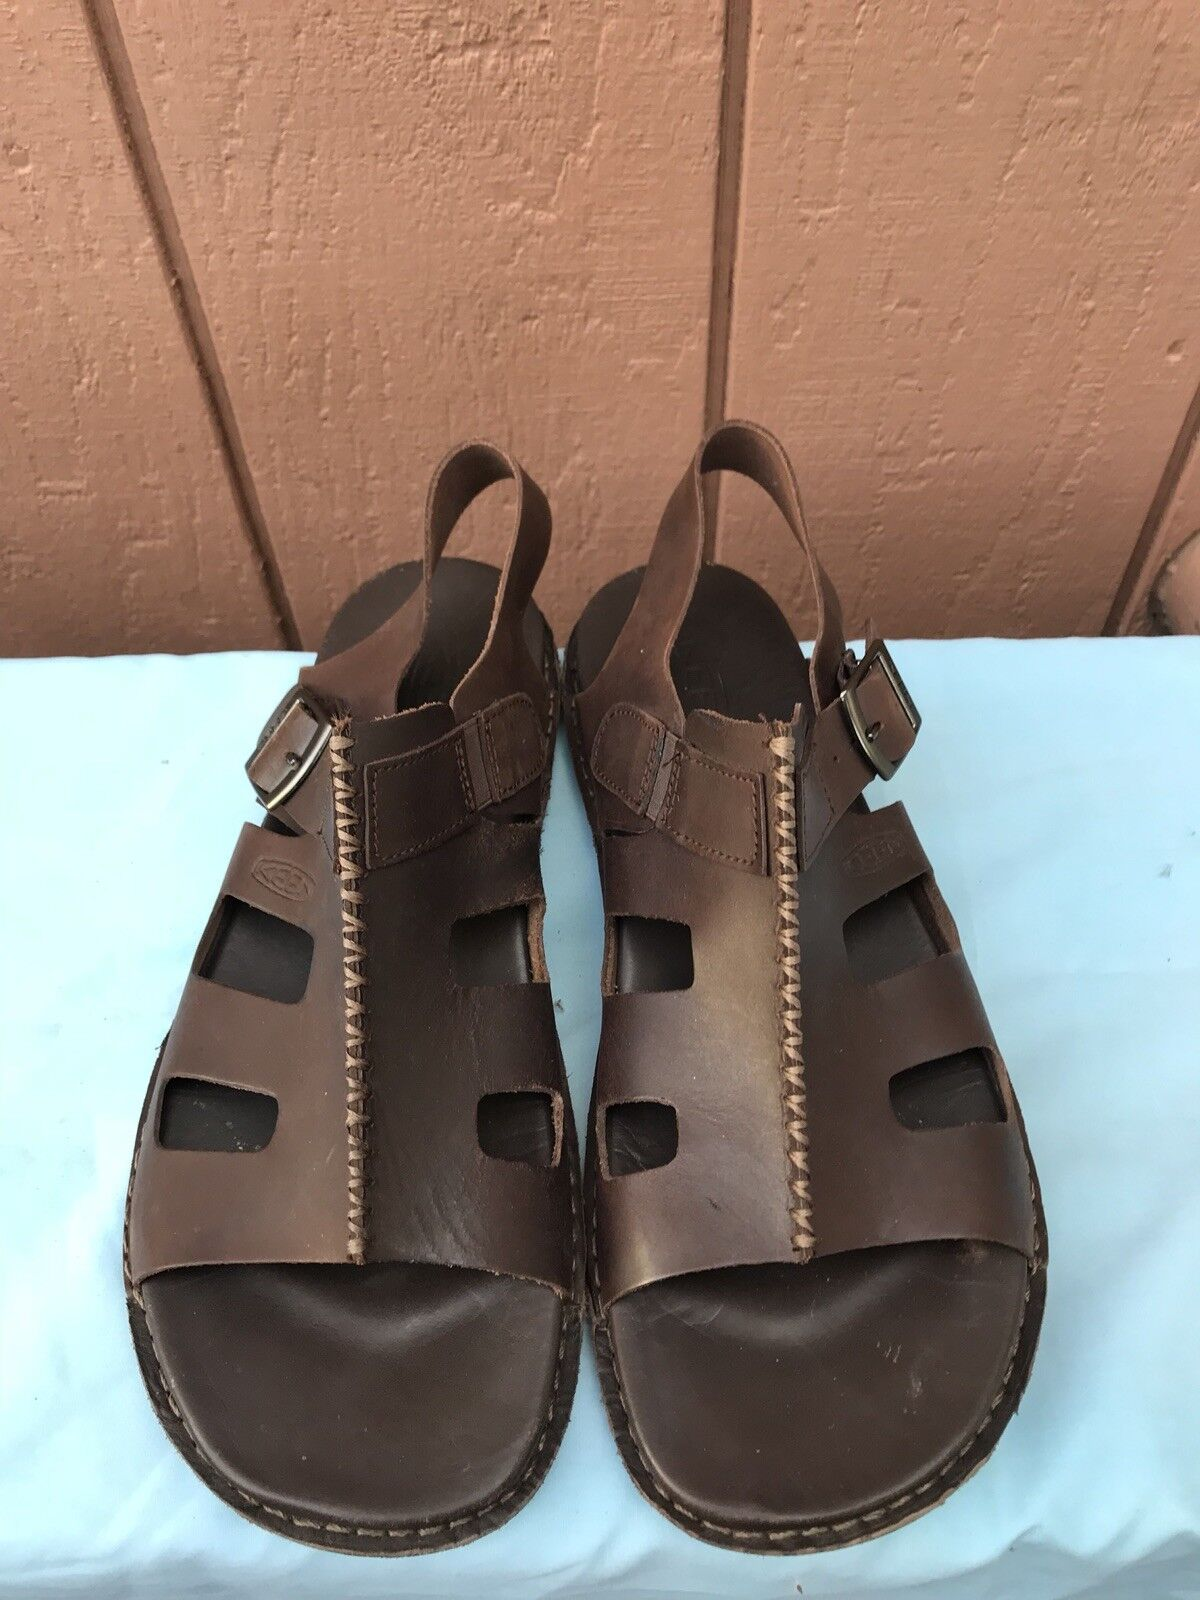 RARE RARE RARE EUC Keen Uomo Dimensione US 10.5 EUR 44 Marronee Leather Open Toe Sandal scarpe A5 055730